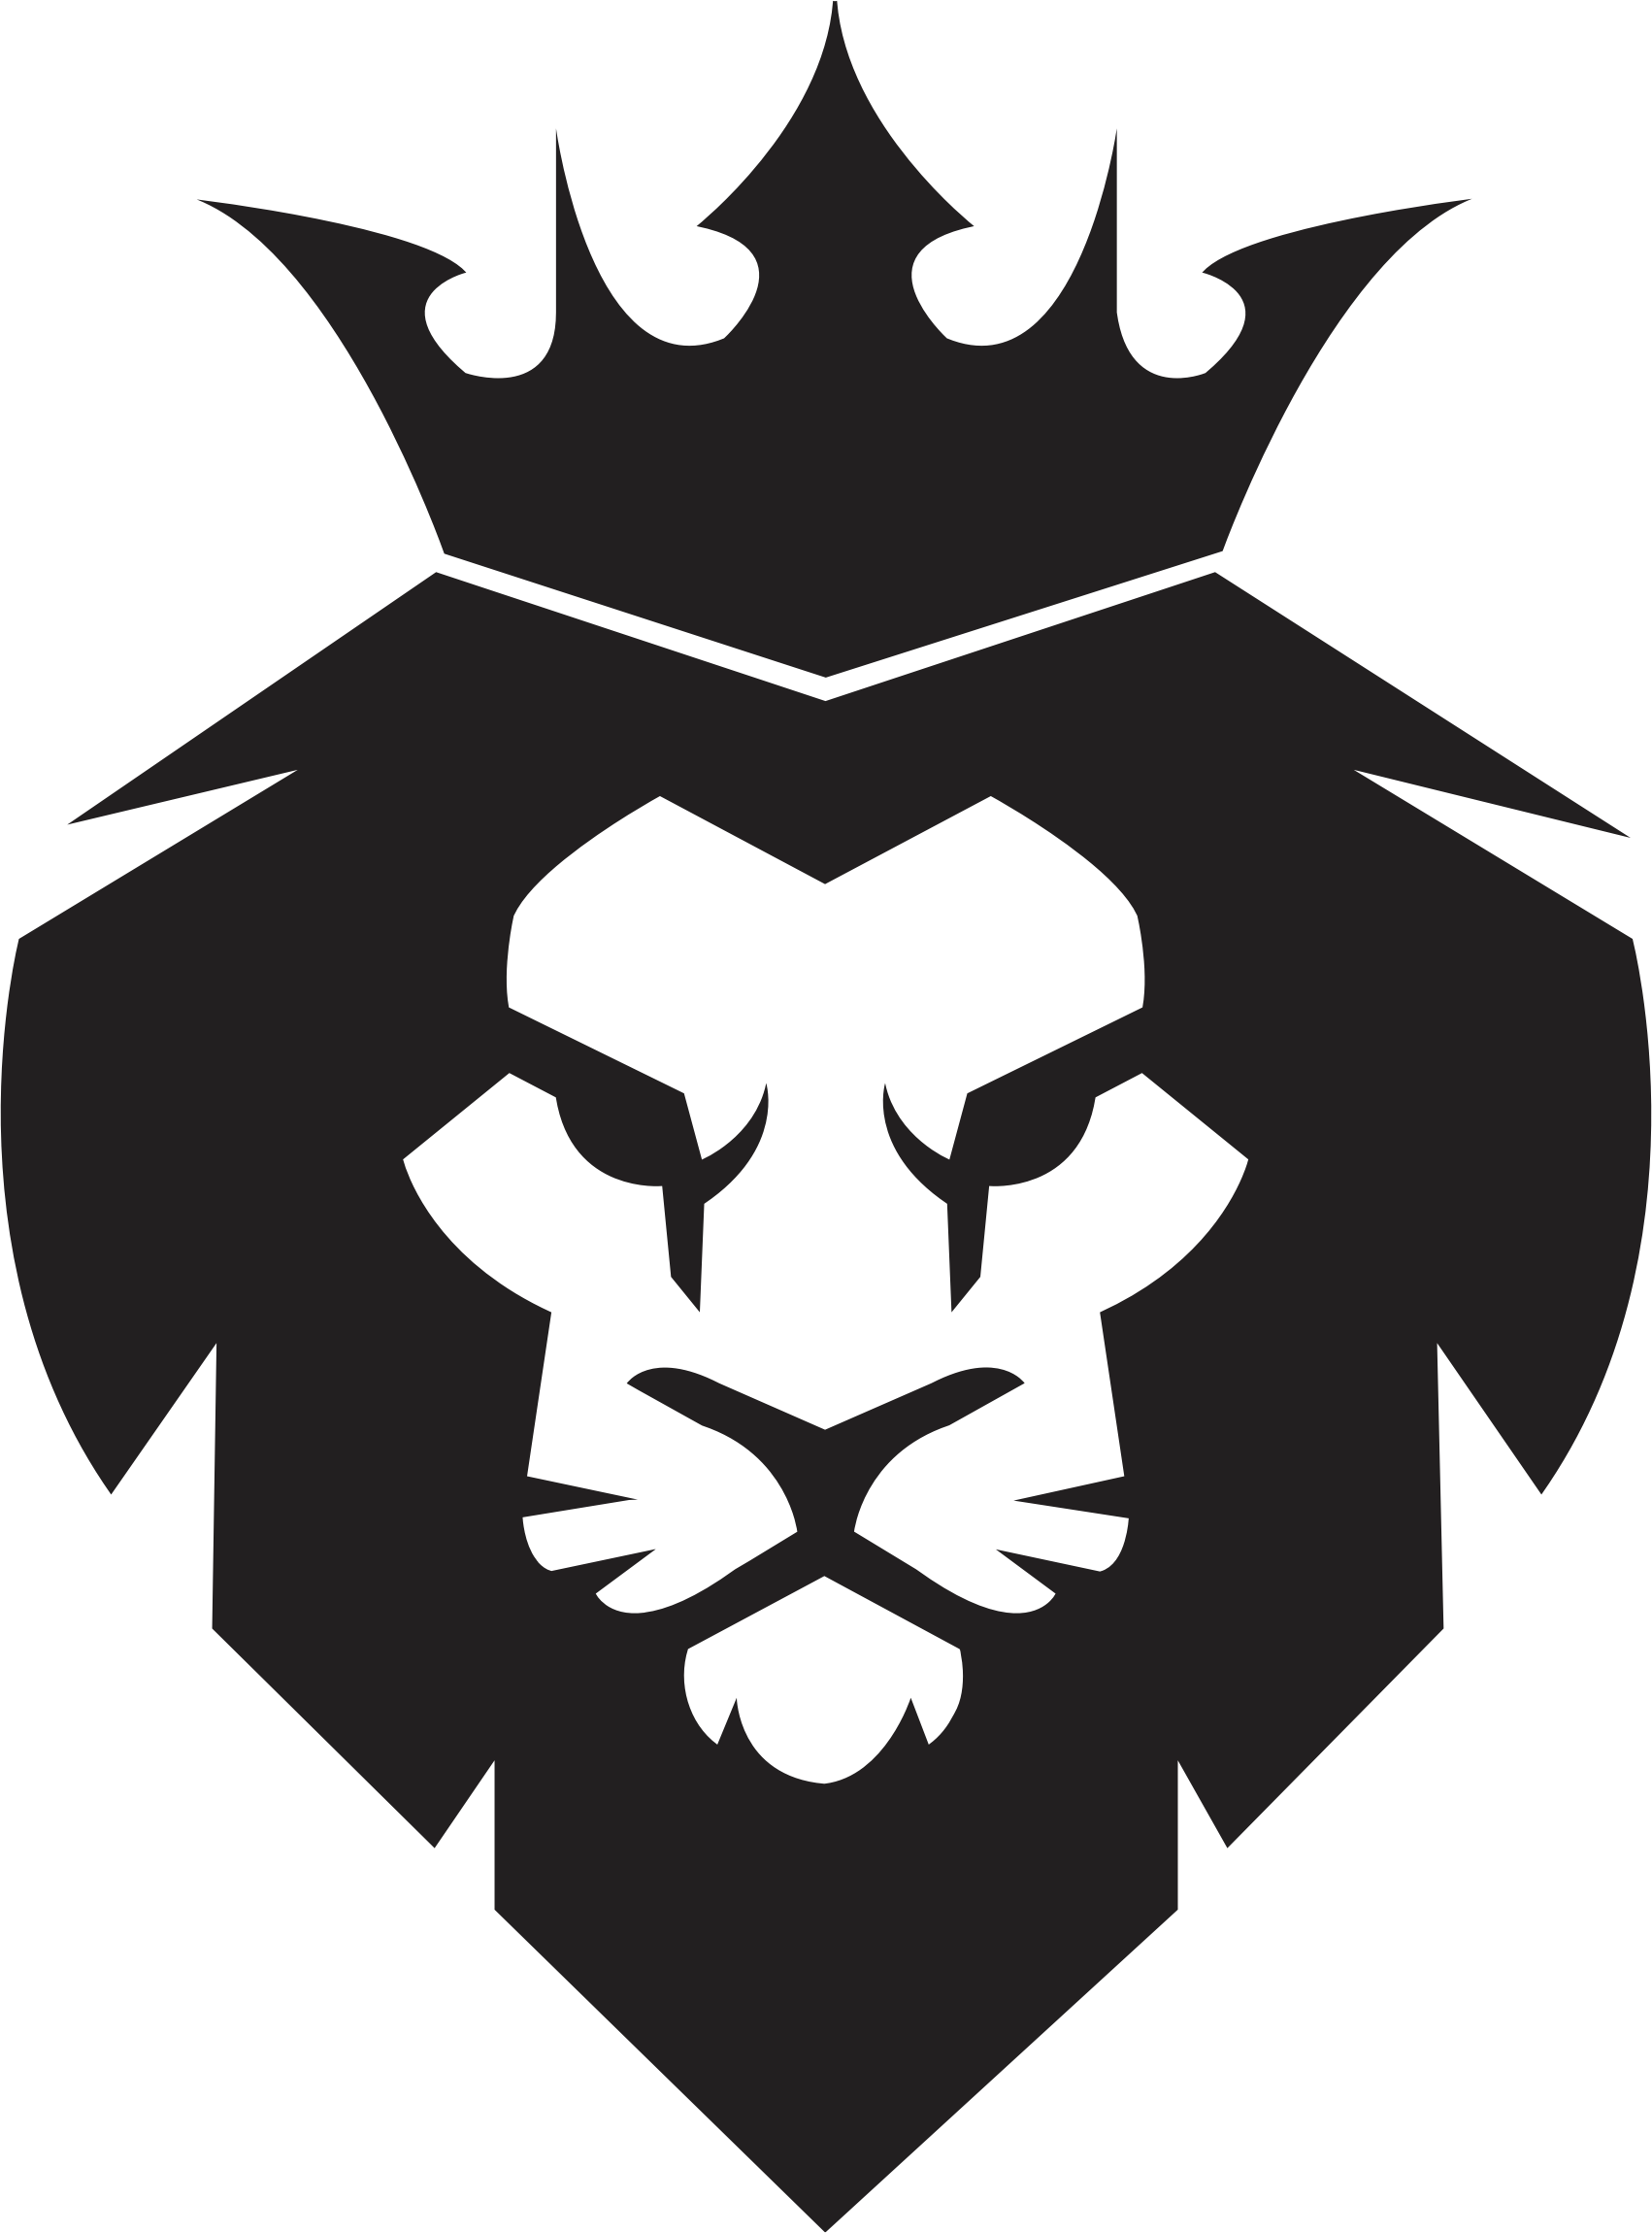 Lion king clipart black and white 3 » Clipart Station.